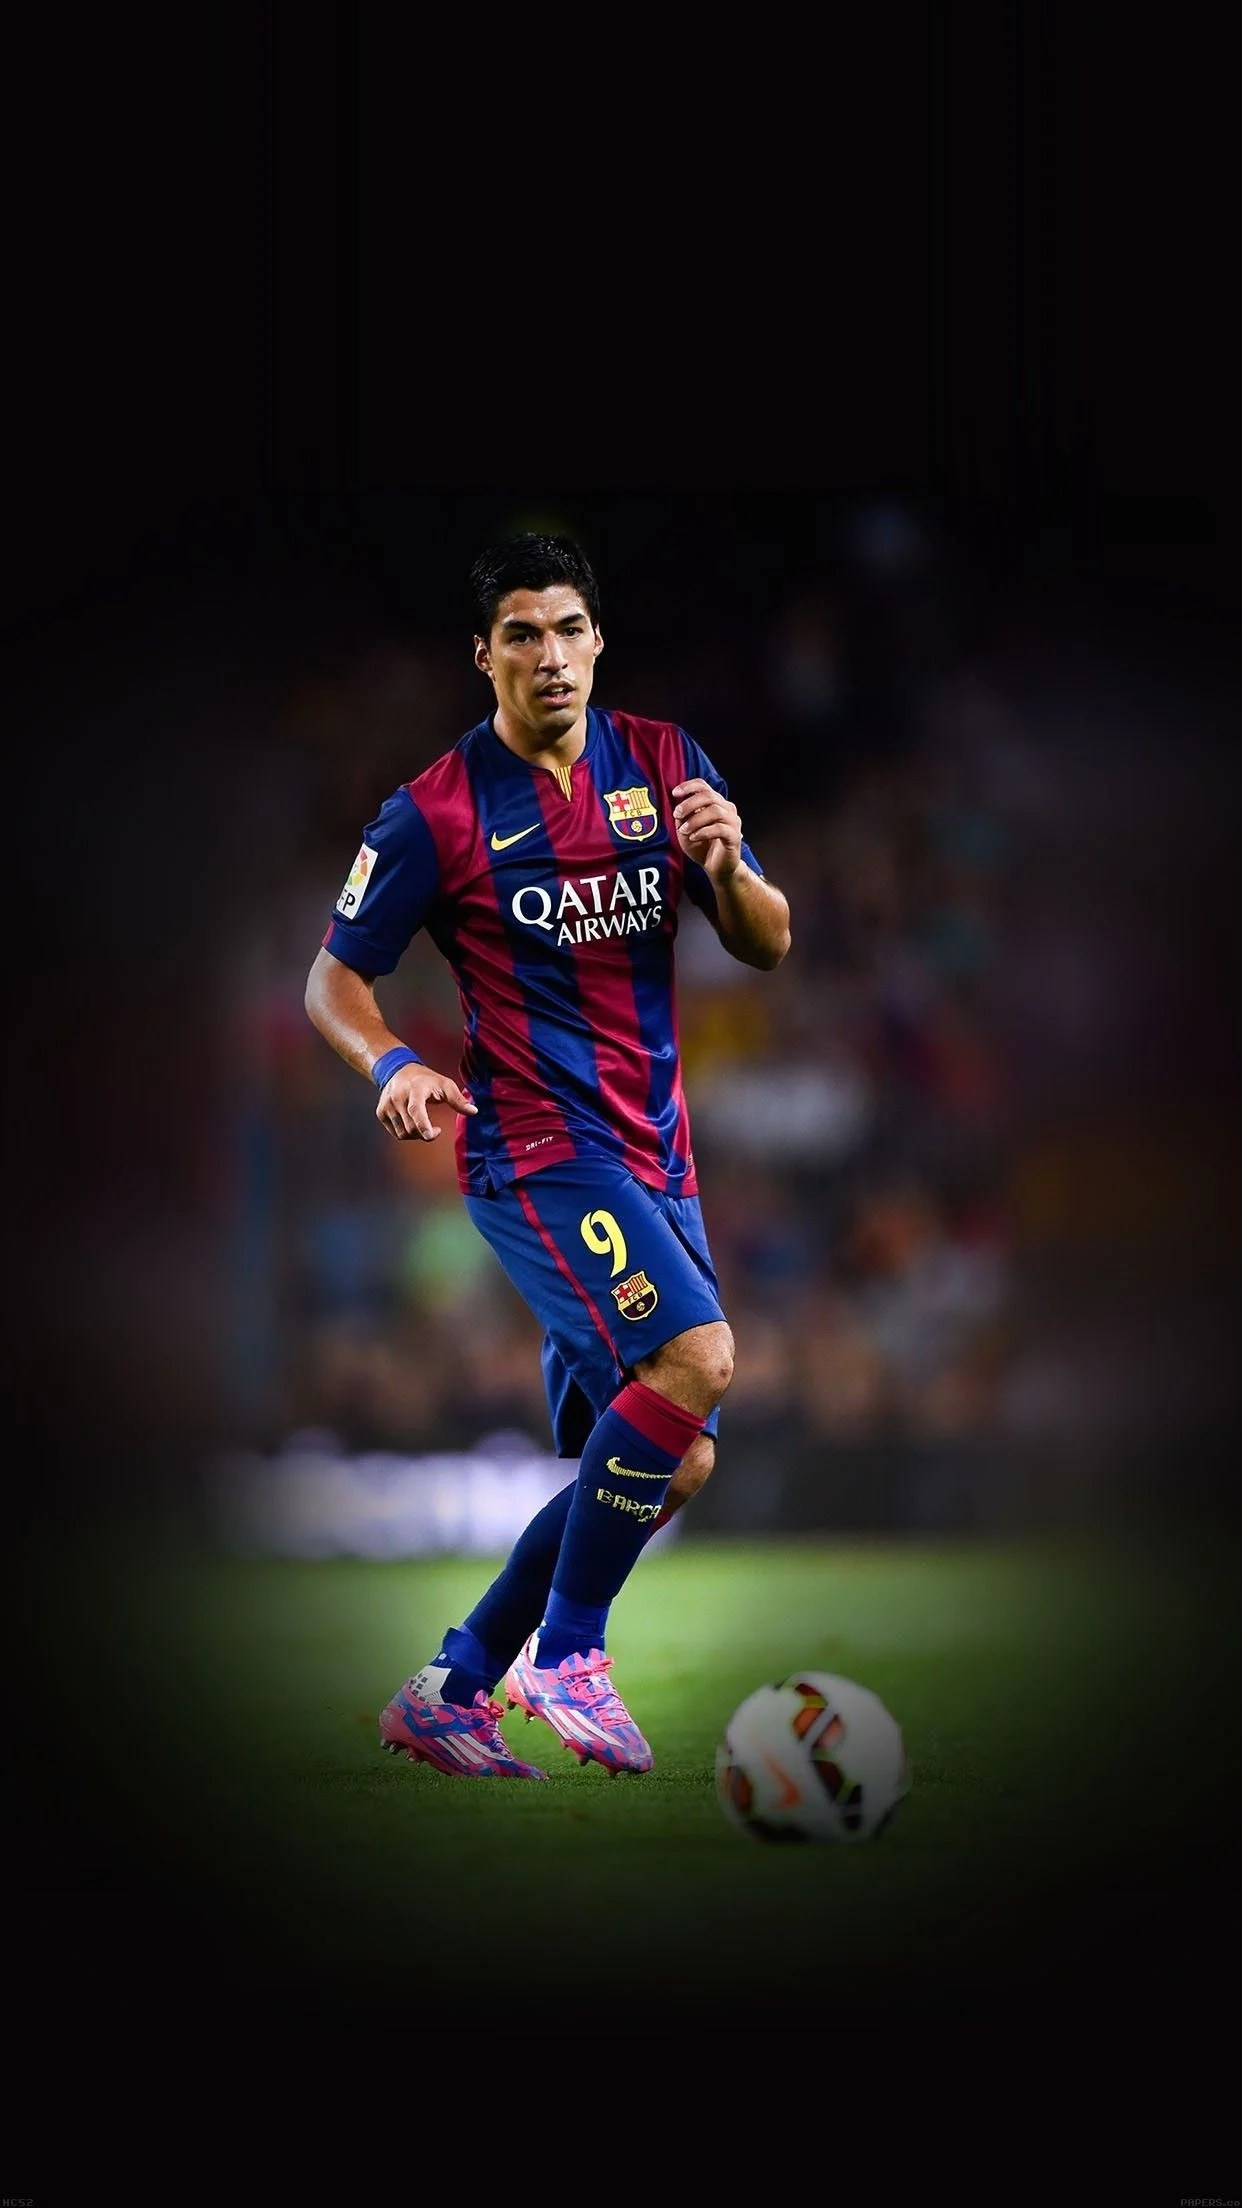 Cool Soccer Wallpapers For Iphone : soccer, wallpapers, iphone, Soccer, IPhone, Wallpapers, Backgrounds, WallpaperAccess